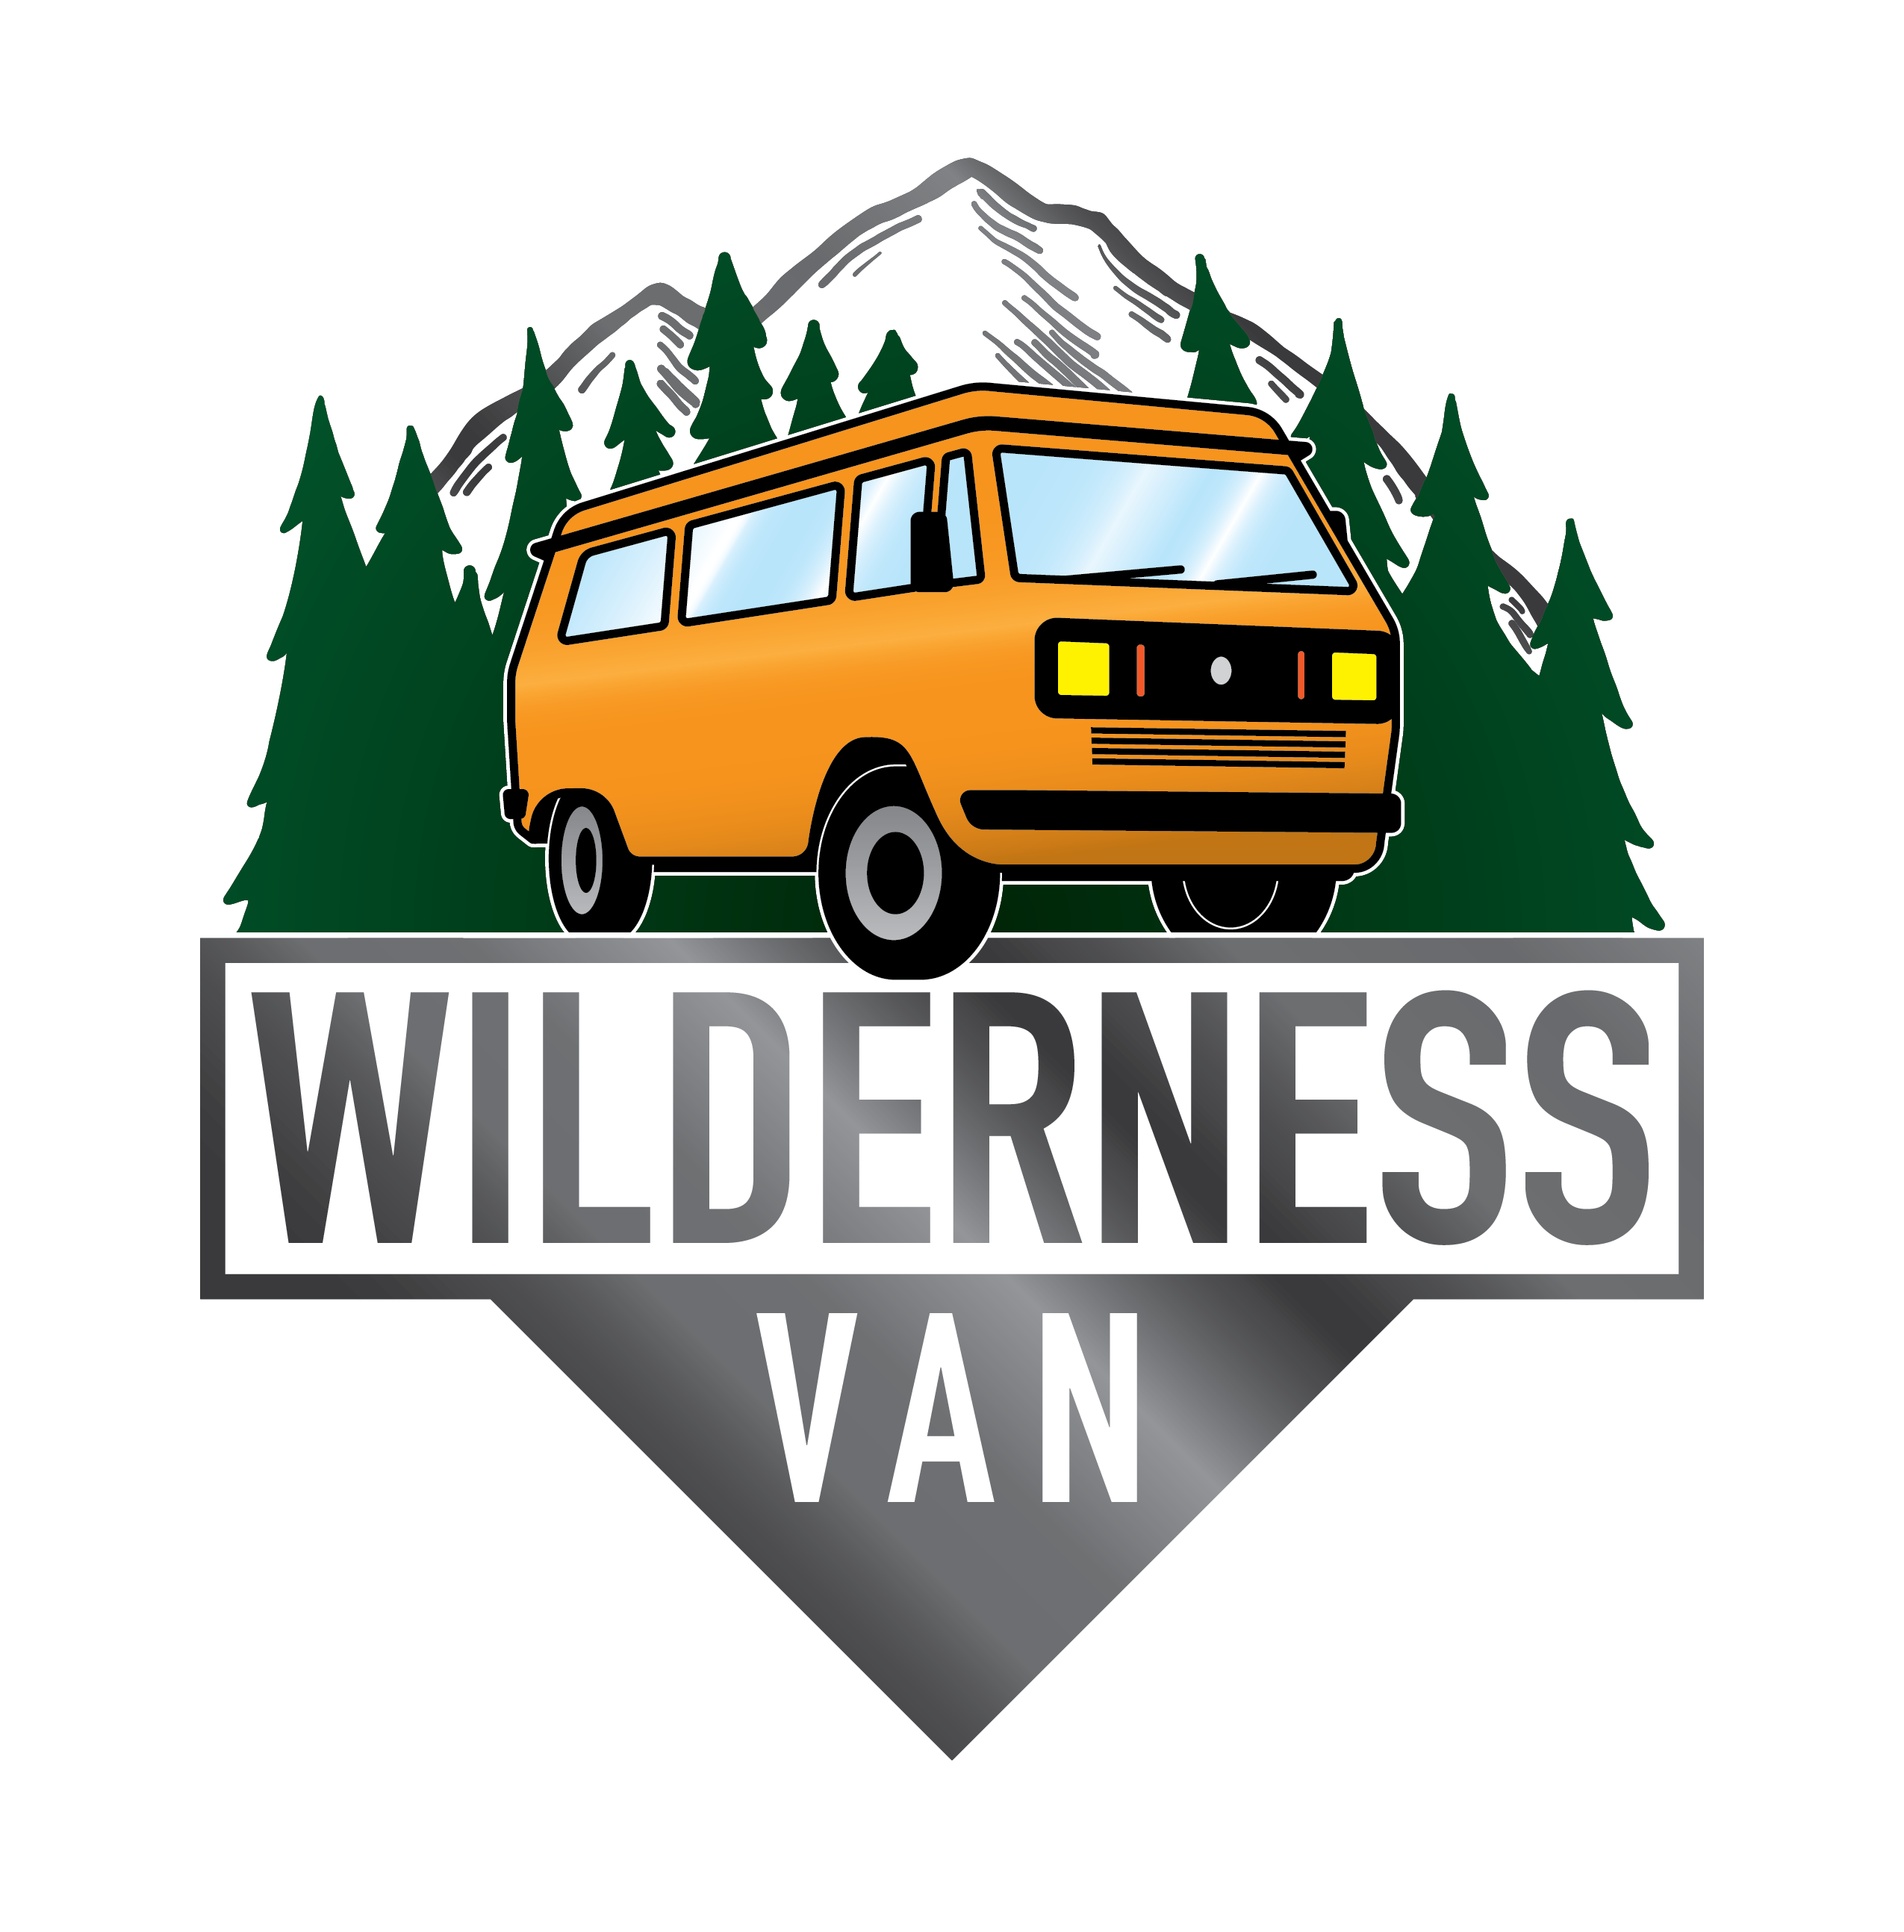 Wilderness Van